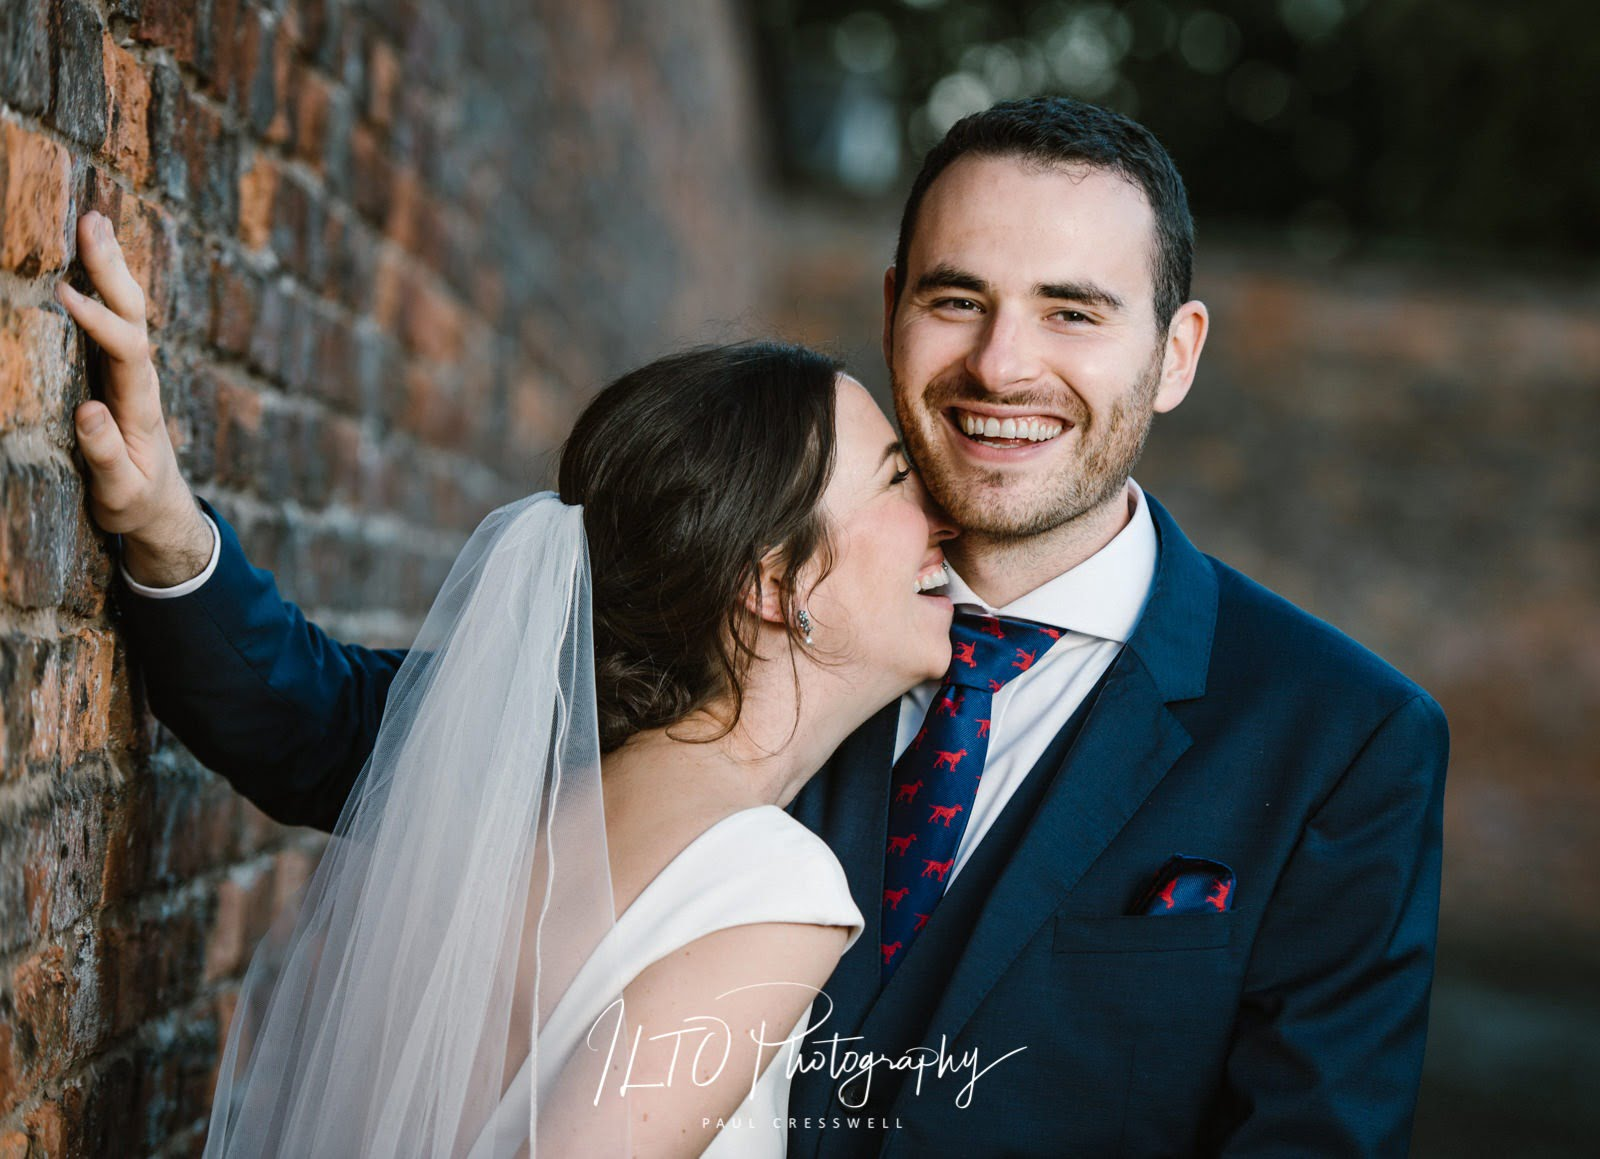 Bride leans in to the groom laughing as they lean against brick wall.